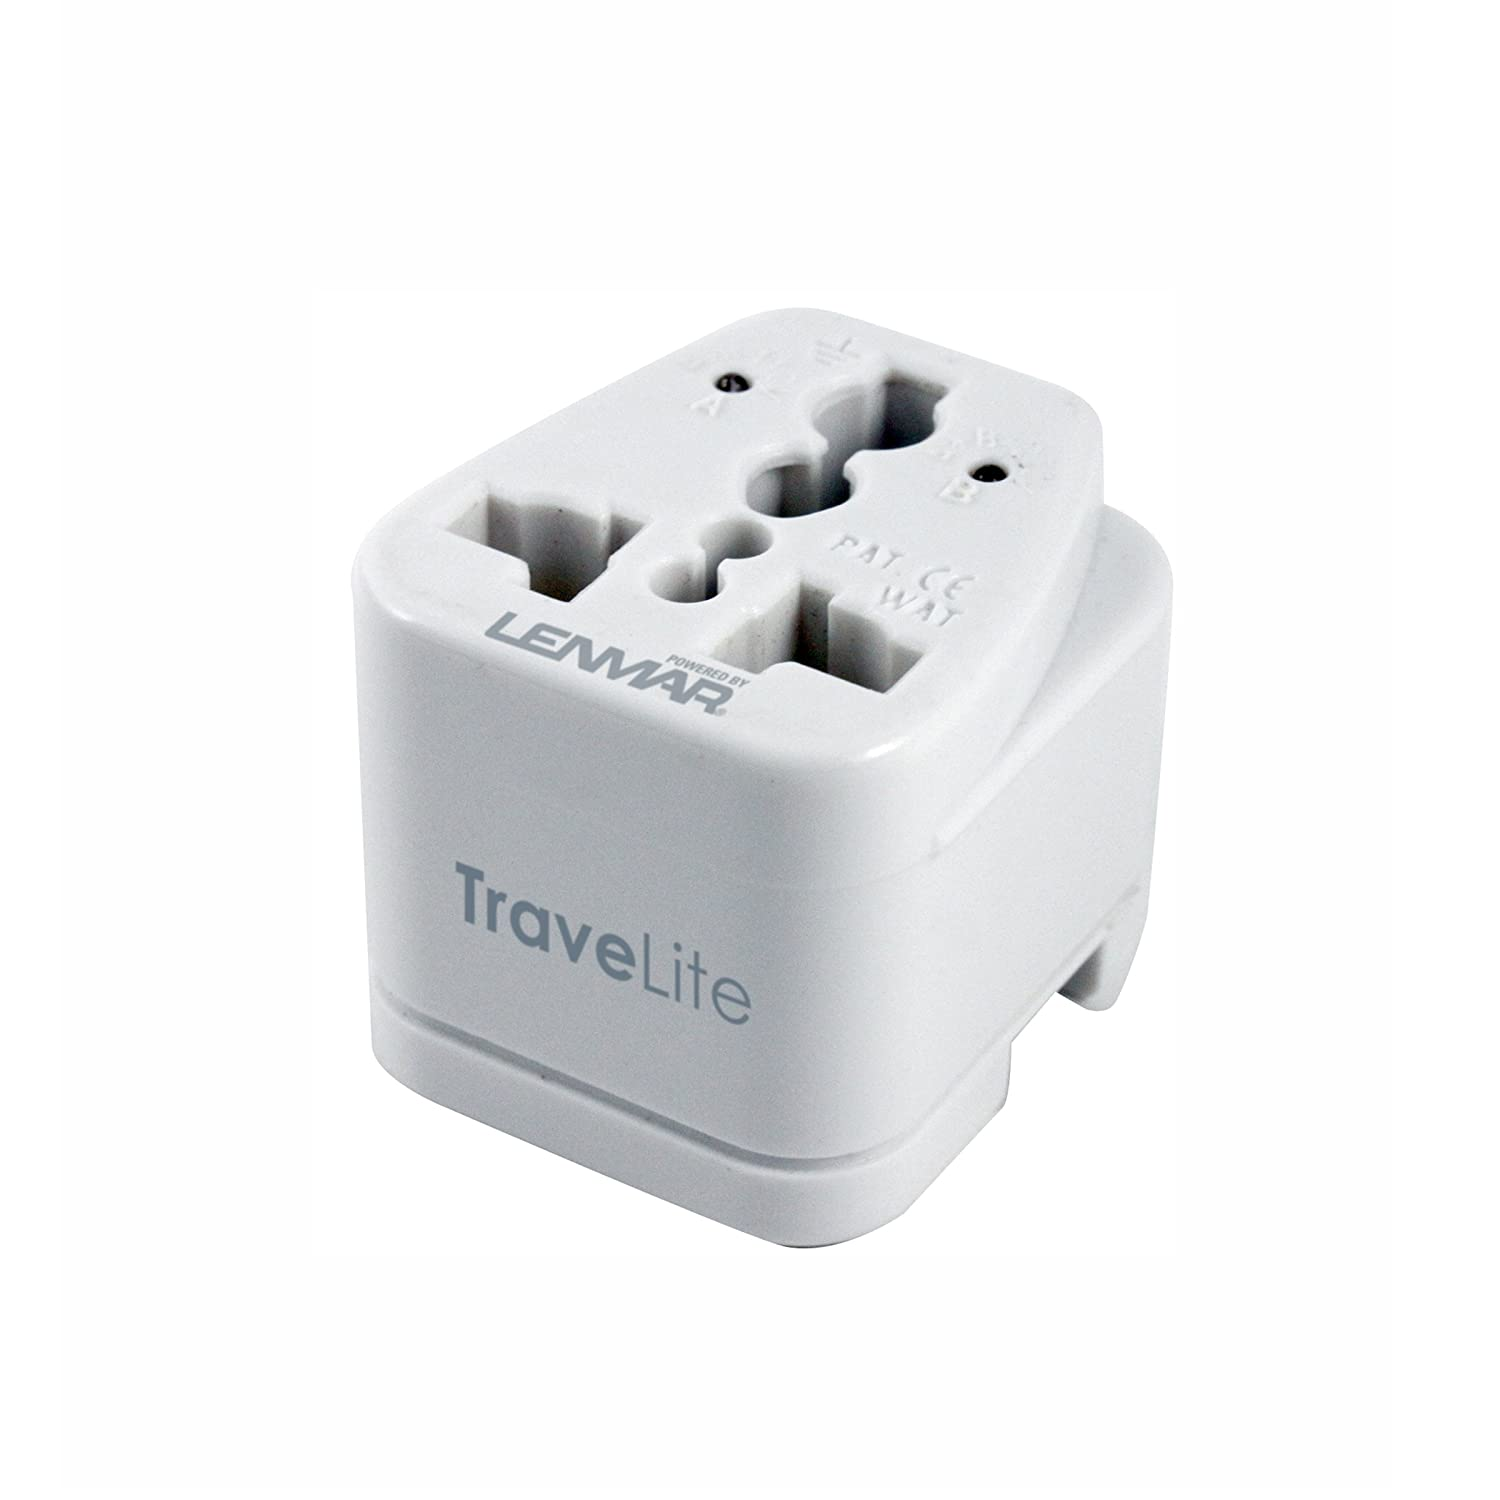 TraveLite Ultra Compact All-in-One International Travel Adapter for Europe; Middle East & Africa; Asia Pacific; South America; & South Pacific By Lenmar